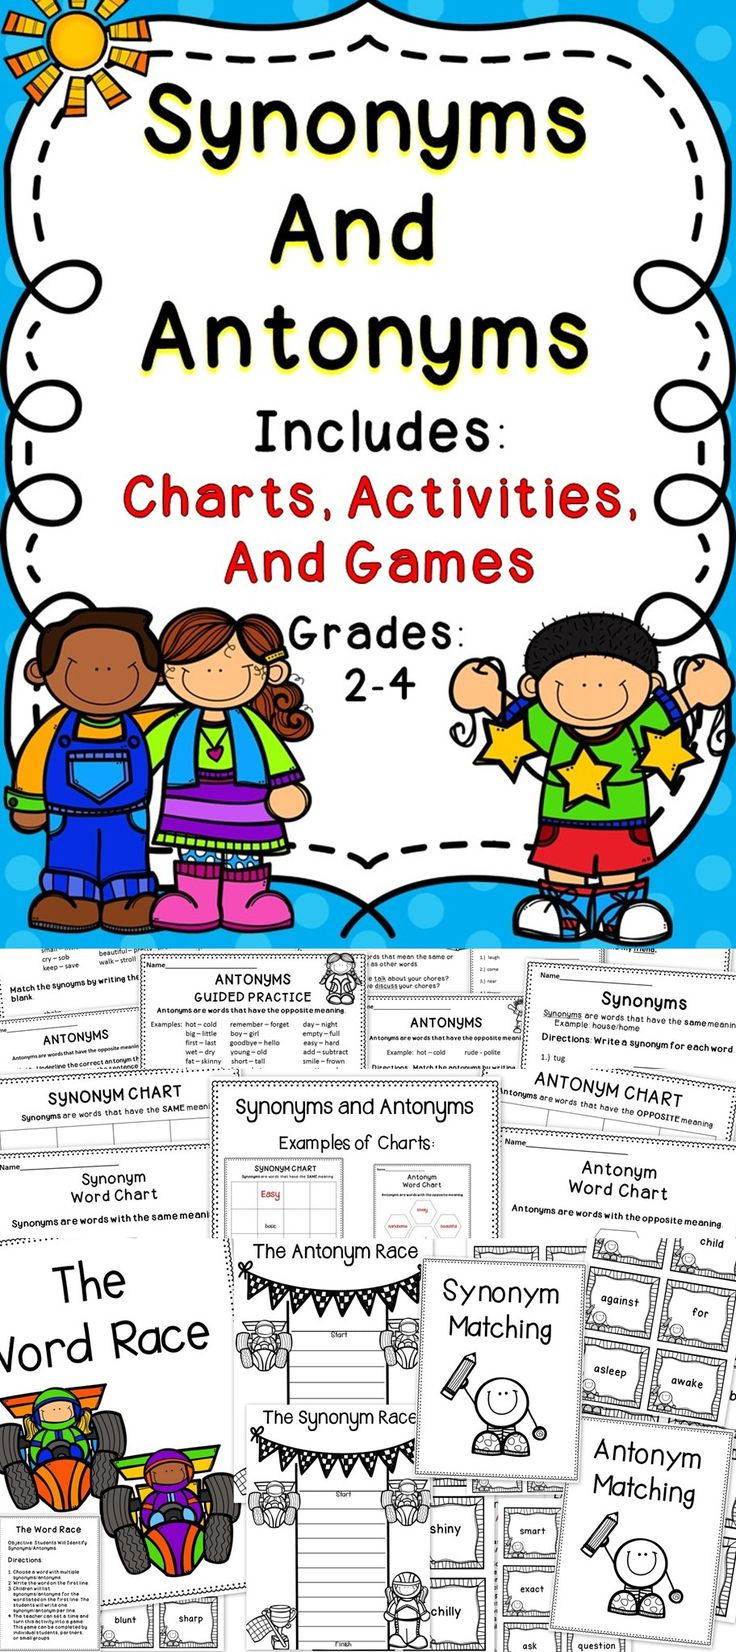 Synonyms and Antonyms Bundle Of Goodies - This is a huge bundle of activities to use with your students.  It includes response sheets, games,and charts! #education